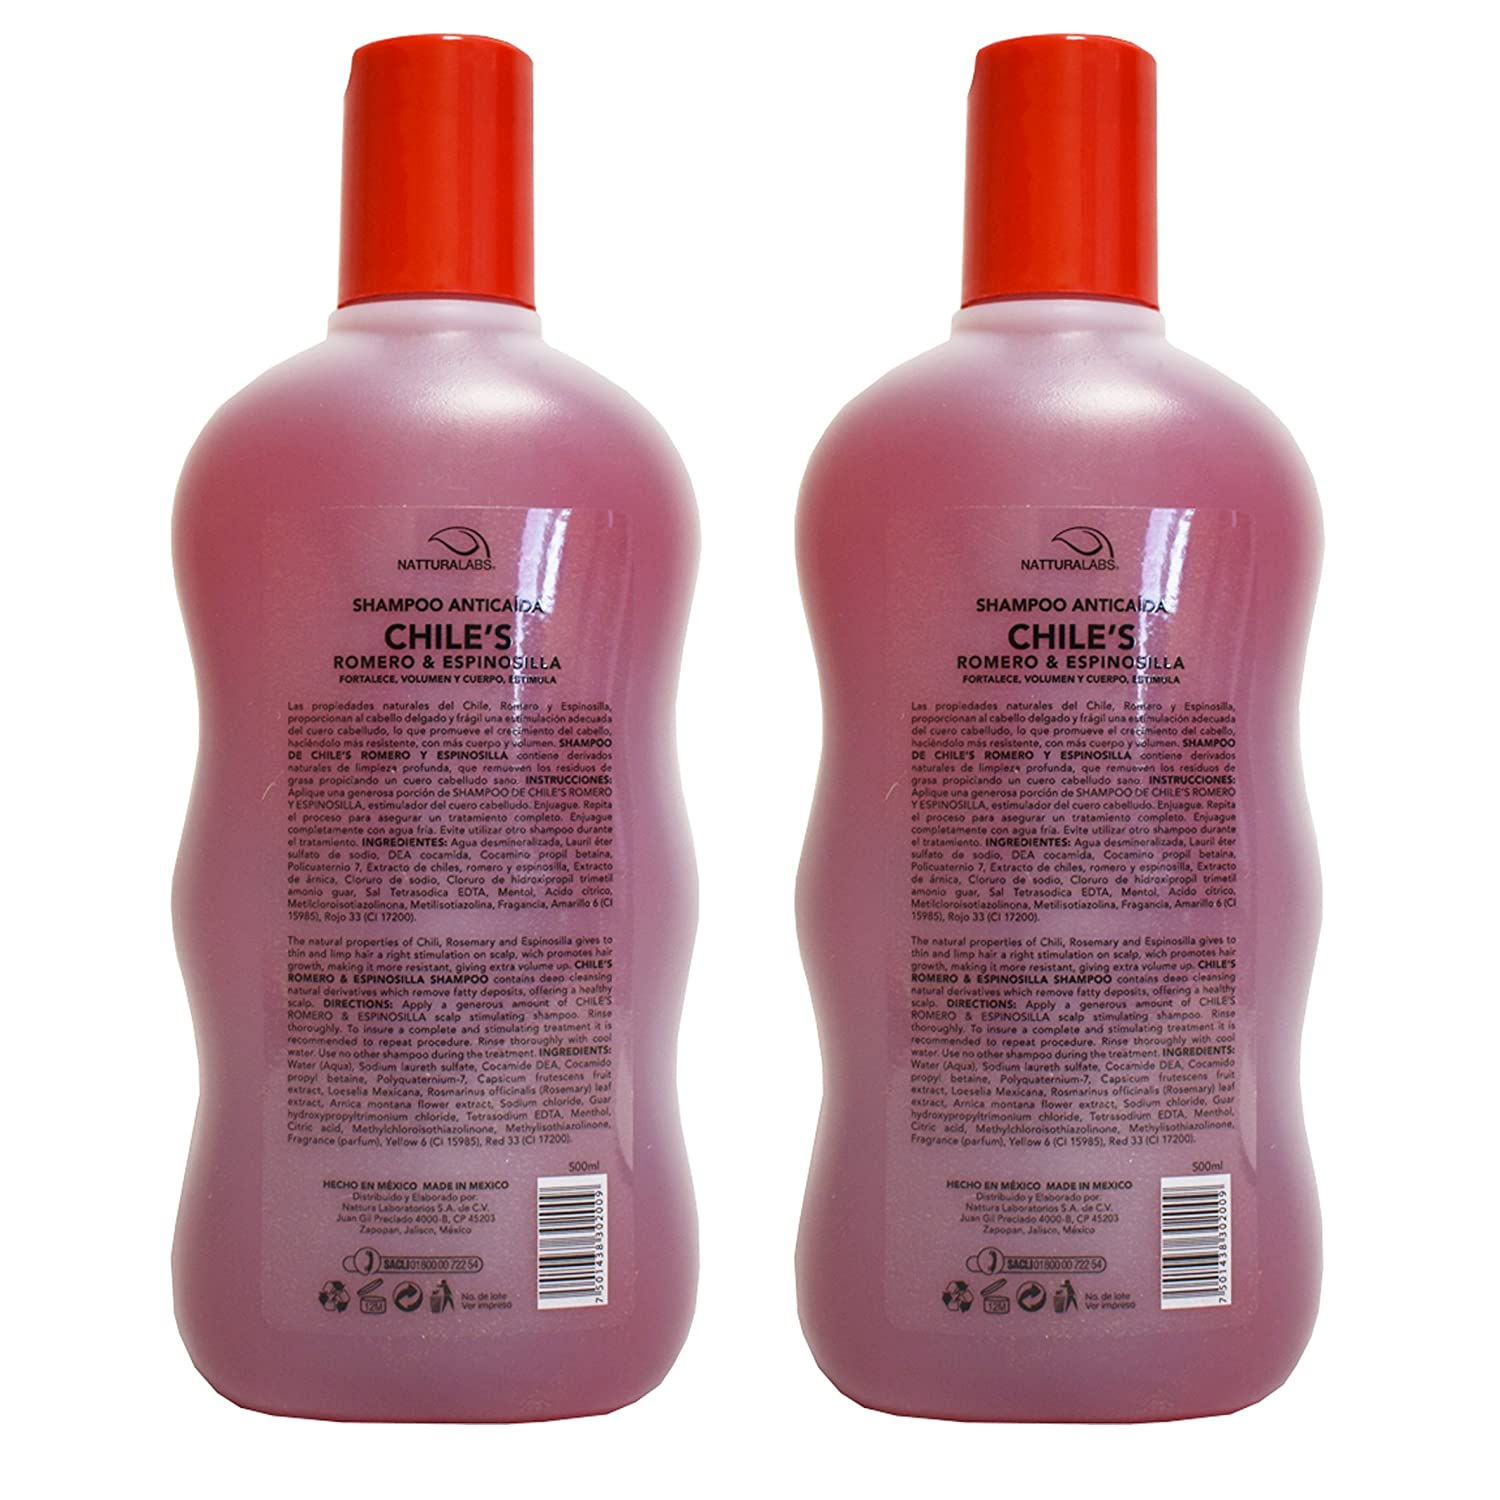 Amazon.com : 2 X Natturalabs Chili Rosemary Shampoo/Anticaida Chiles Romero & Espinosilla 16.9oz : Beauty